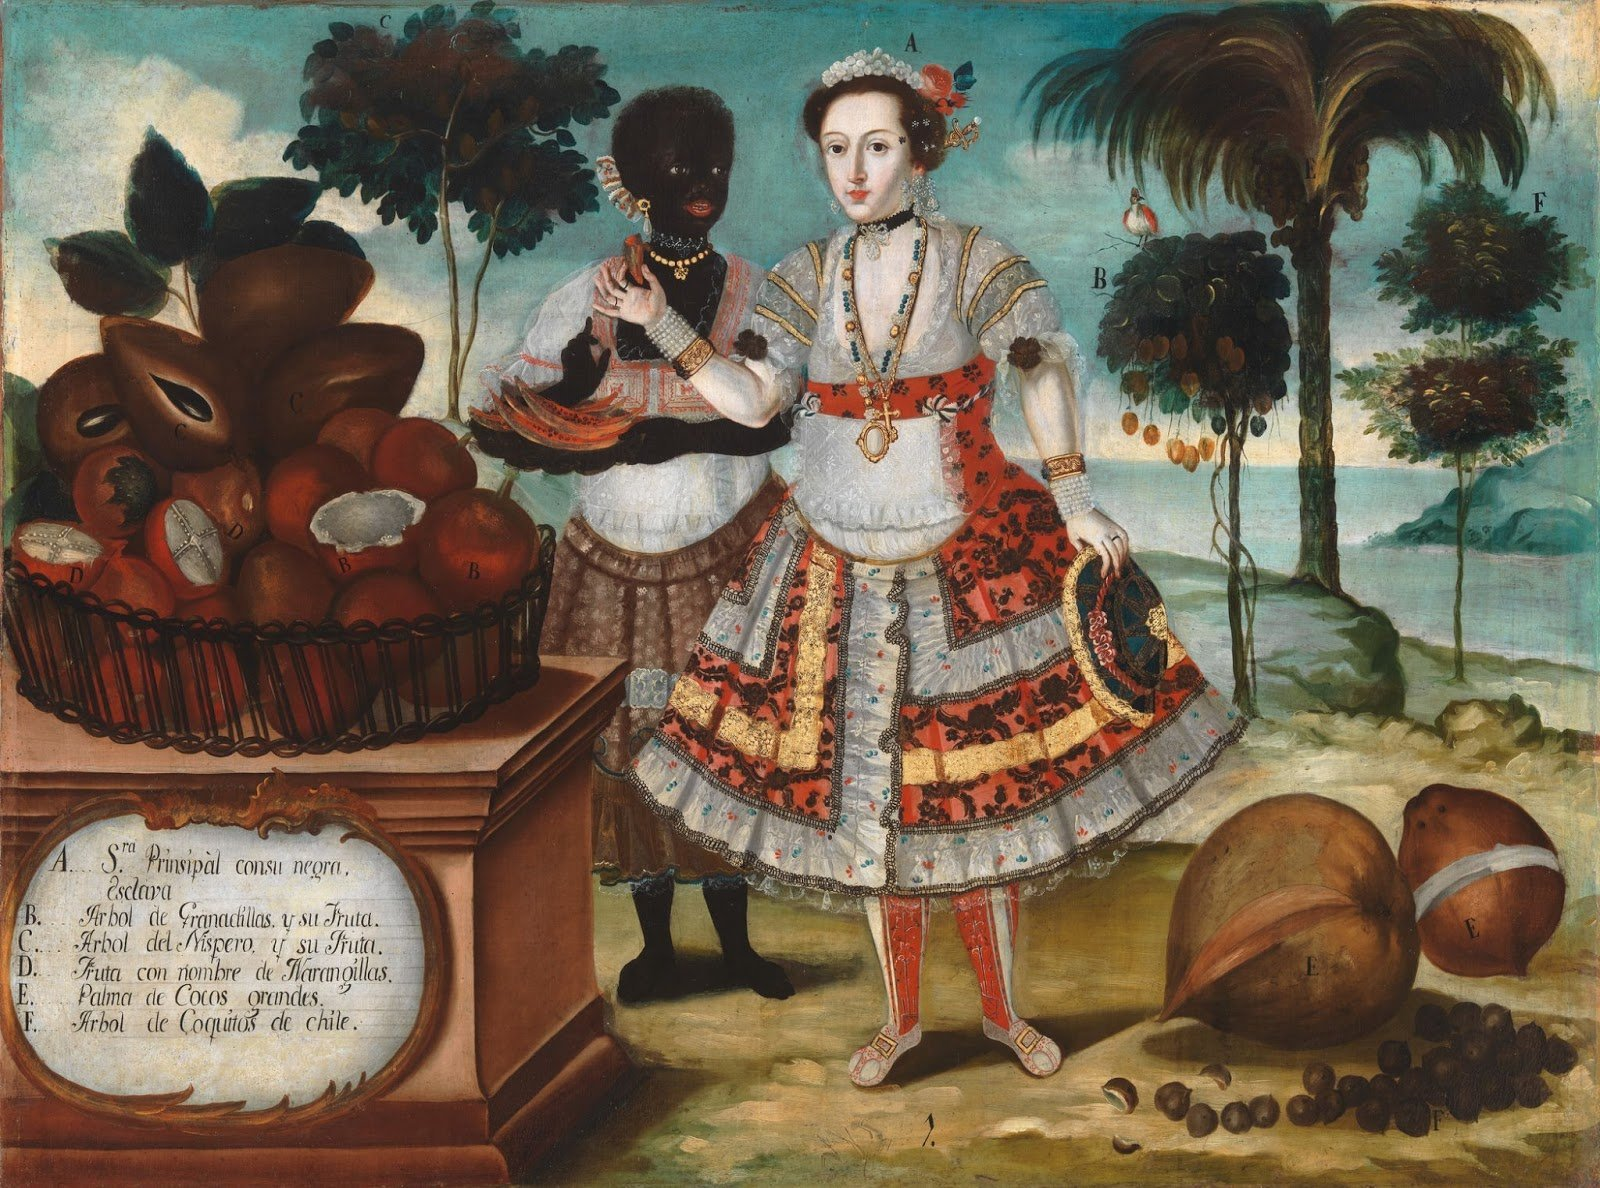 Oil painting of a white Spanish noble woman and her black slave with coconut & coconut trees in the background